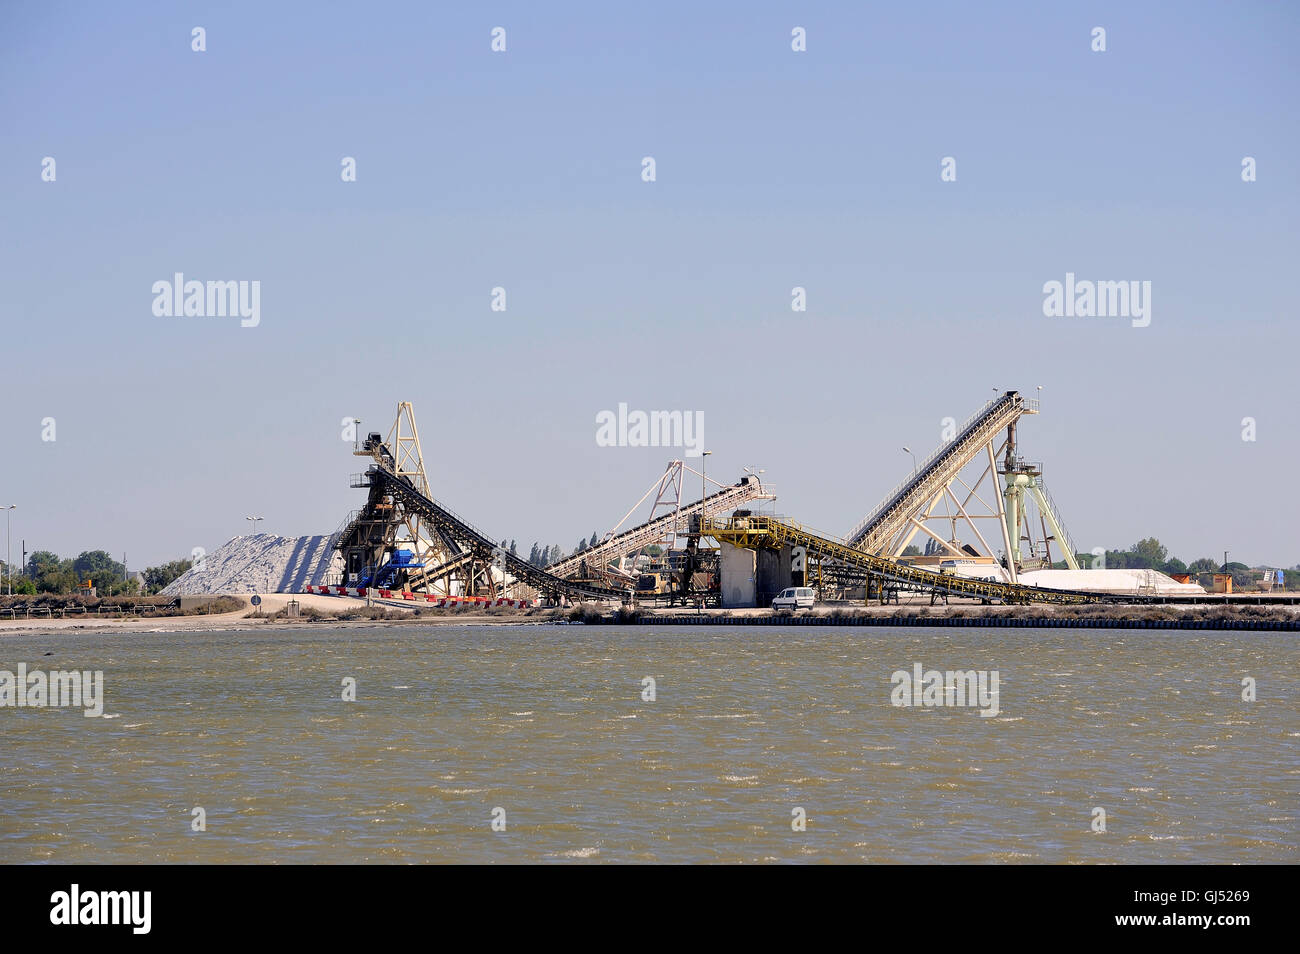 Site operating sea salt saline Aigues-Mortes with big machines and trucks working for the salt storage - Stock Image